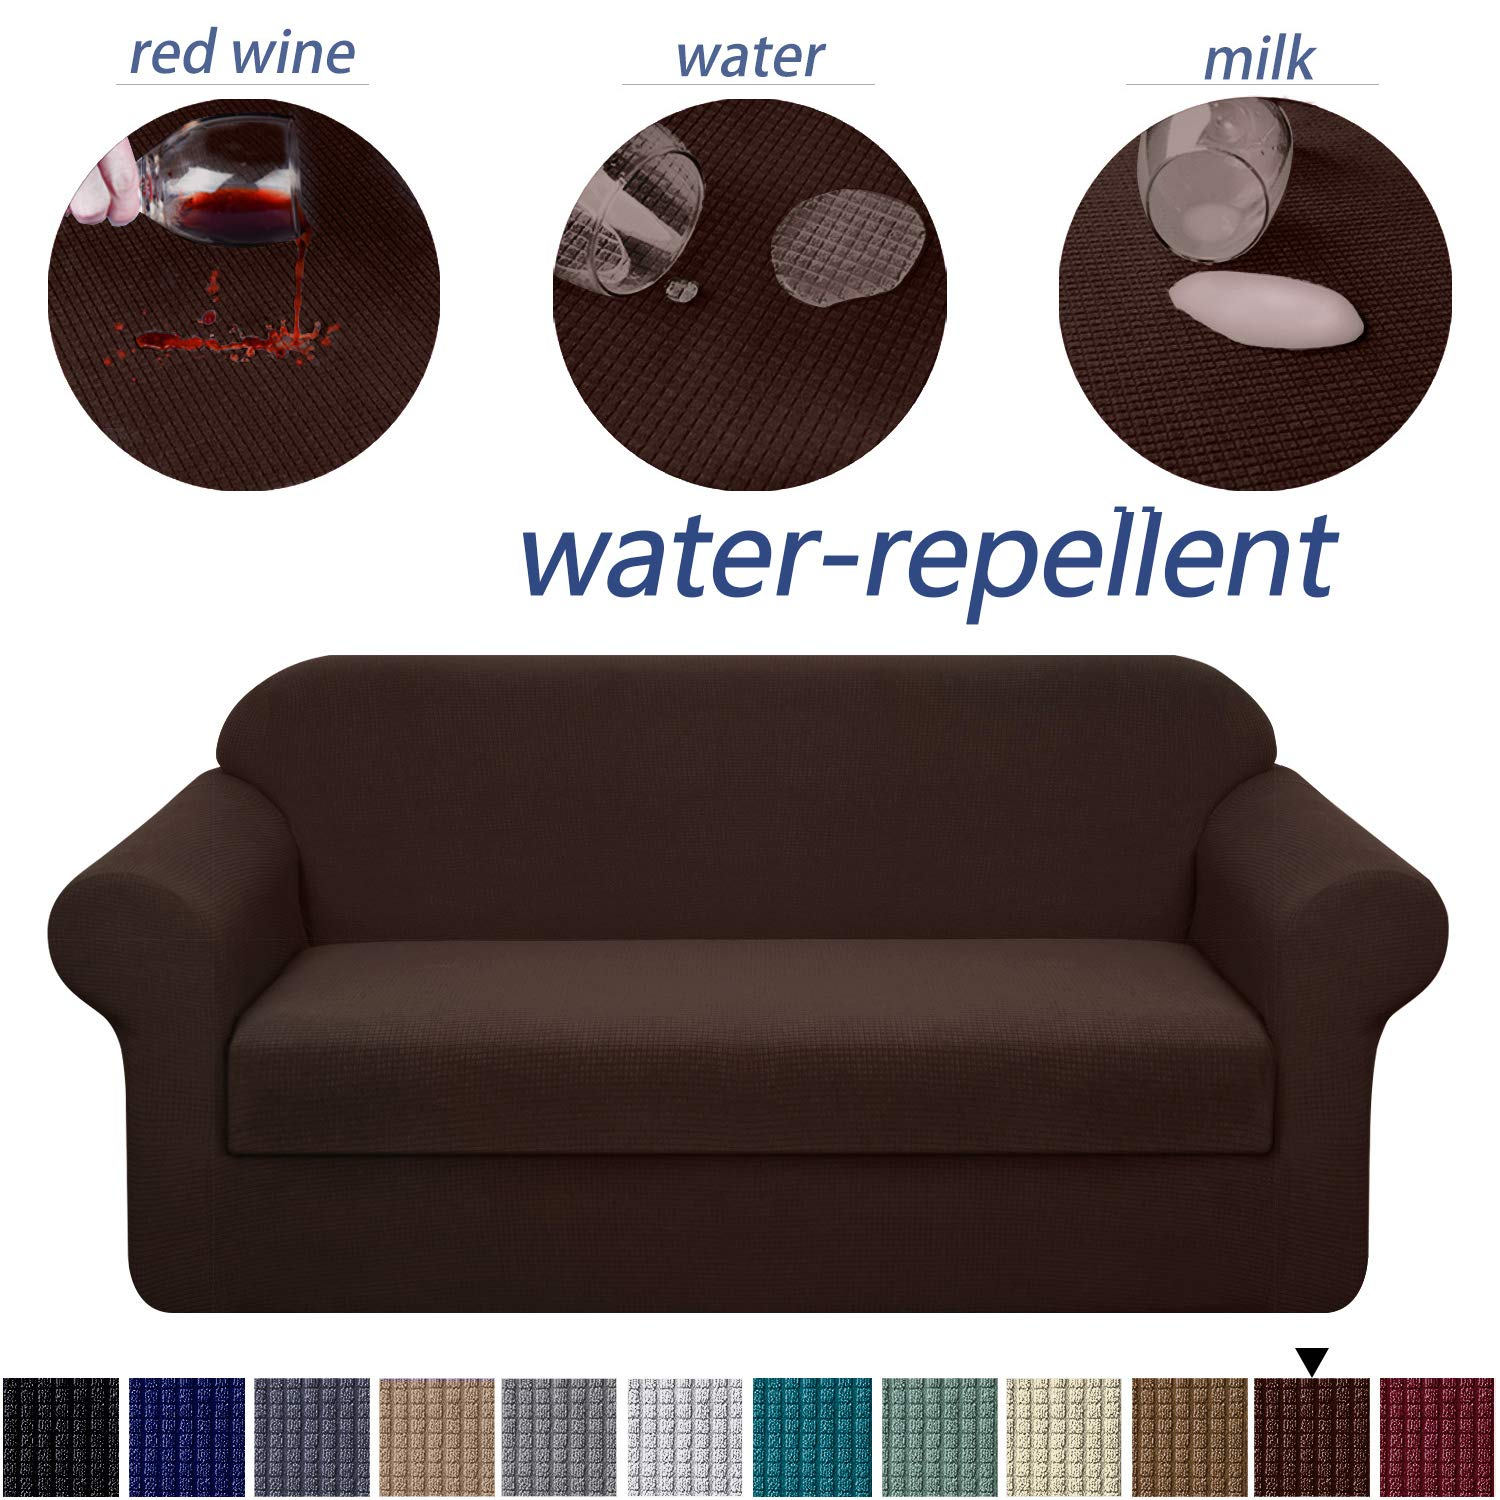 Granbest Premium Water Repellent Sofa Cover 2-Piece High Stretch Couch Slipcover Super Soft Fabric Couch Cover (Chocolate, XLarge-2 Pieces)